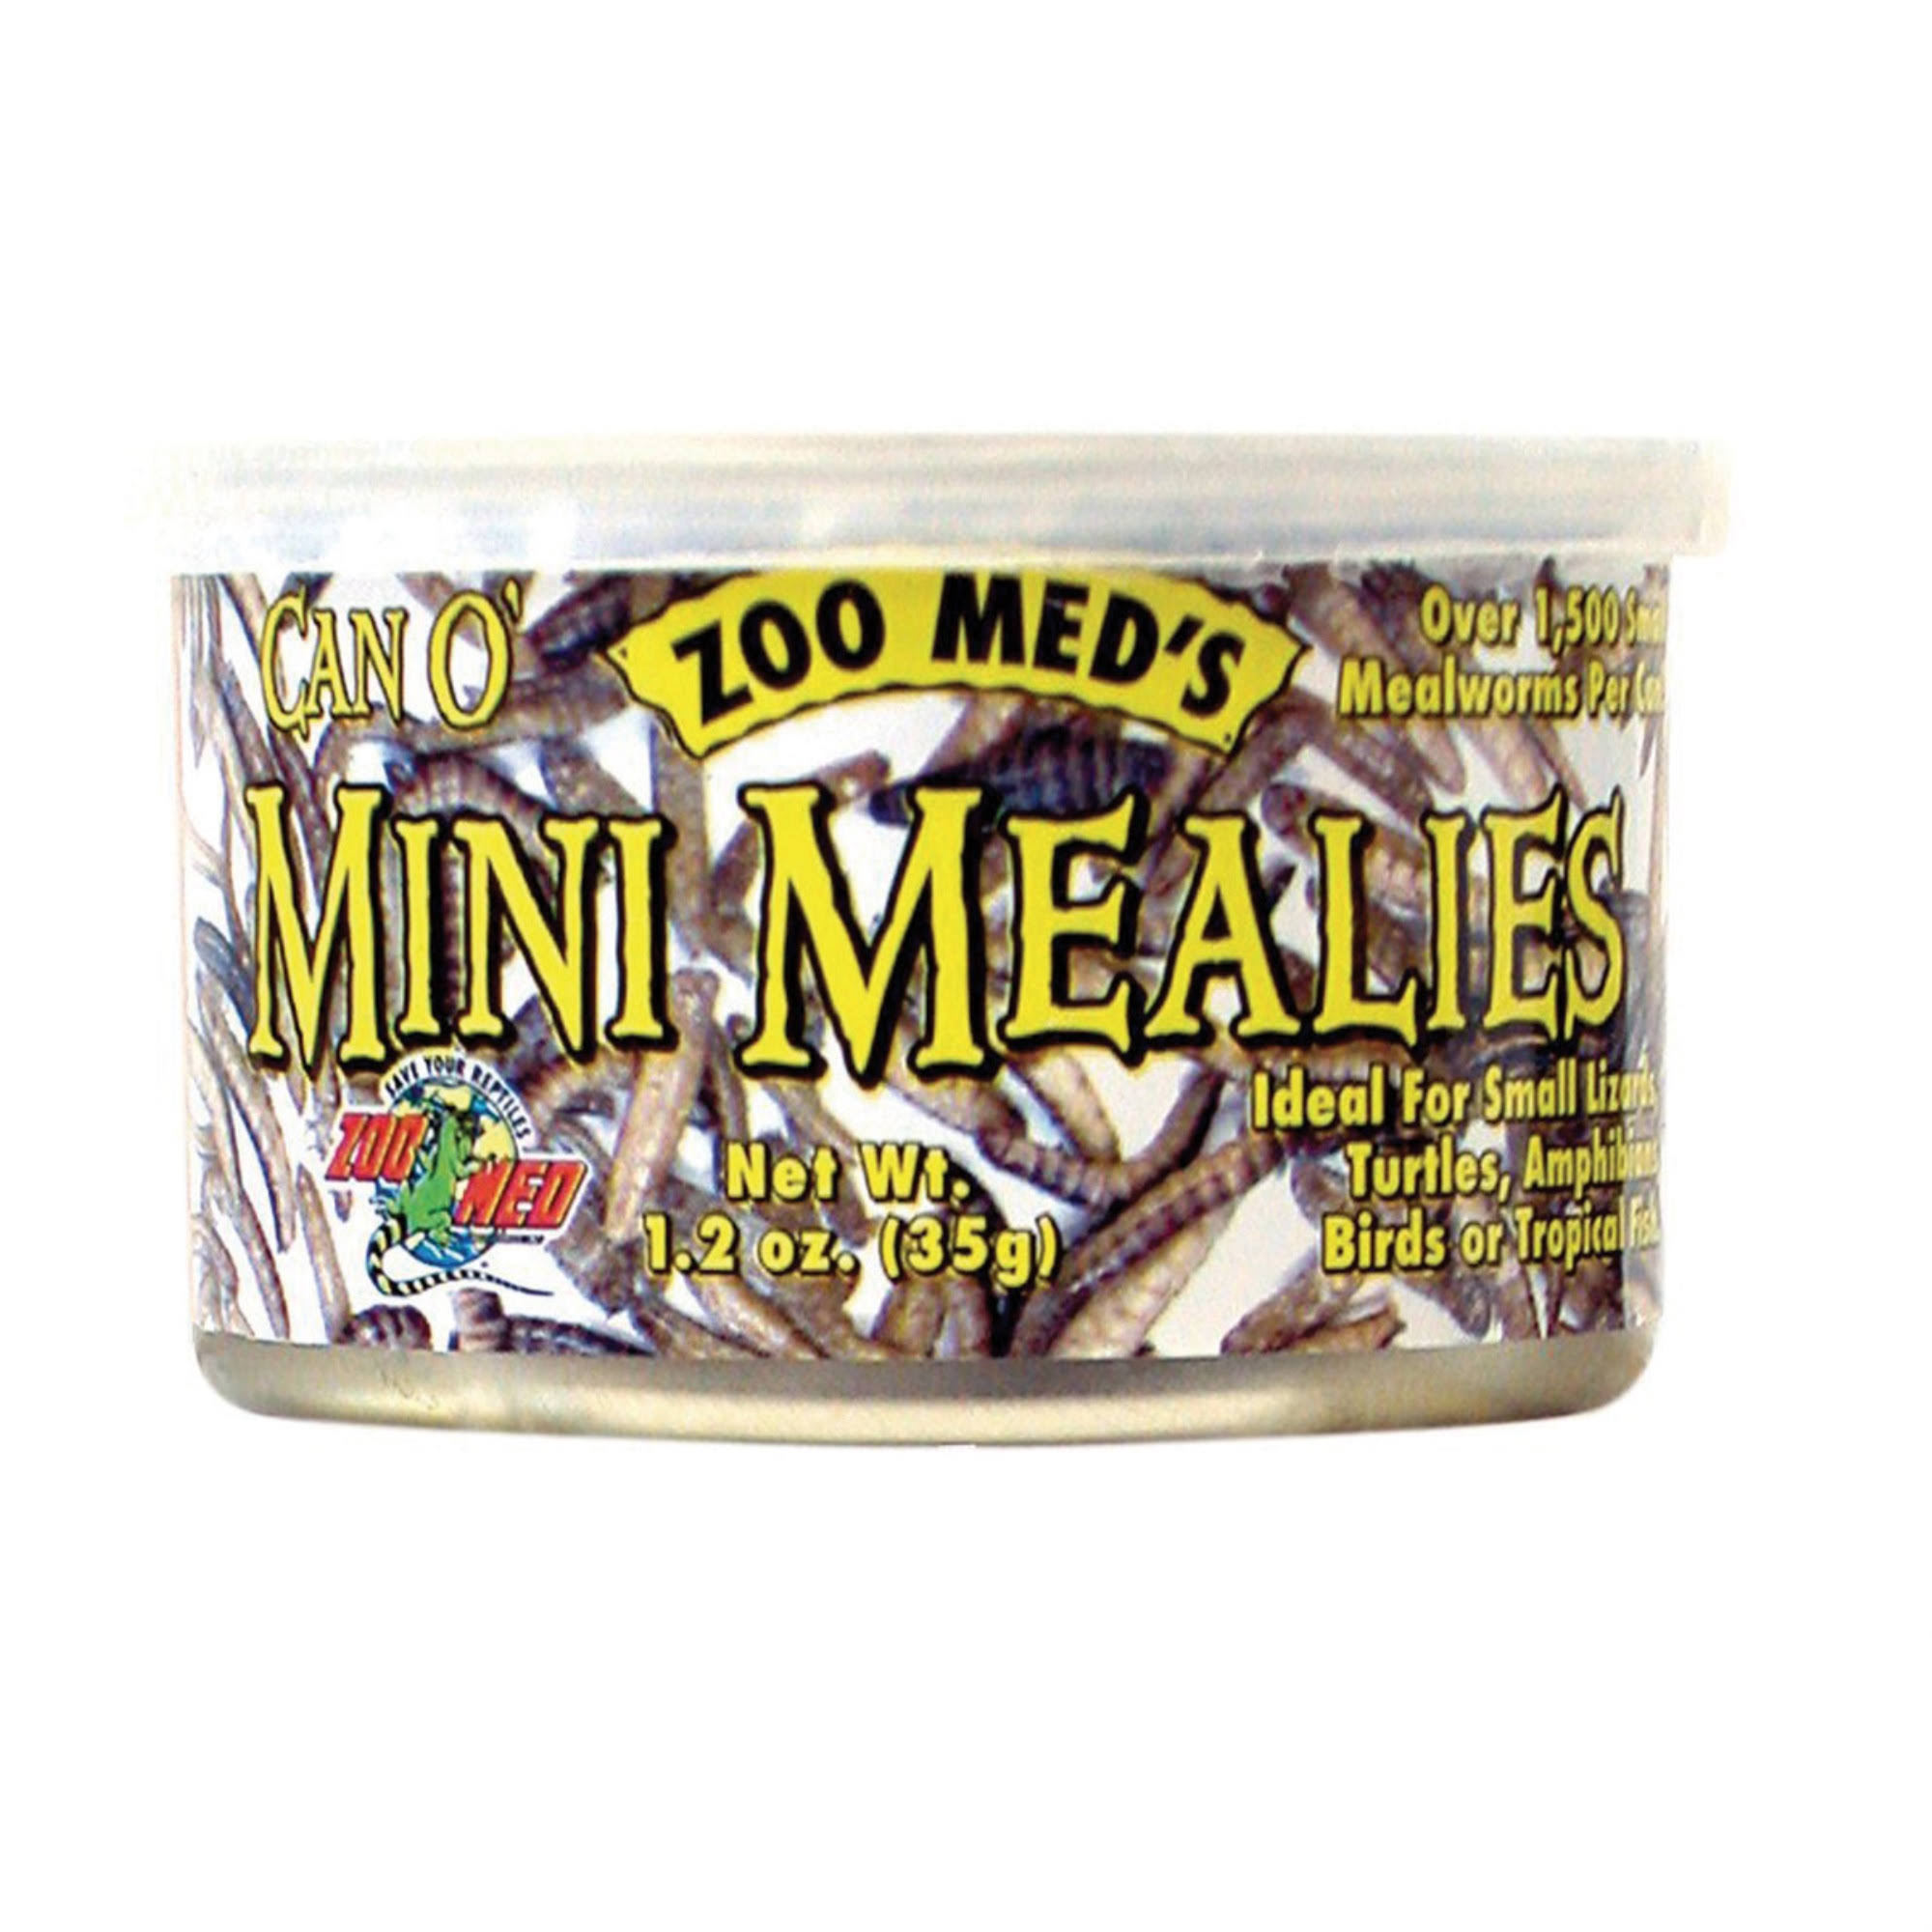 Zoo Med Can O Mini Meal Worms - 1.2oz